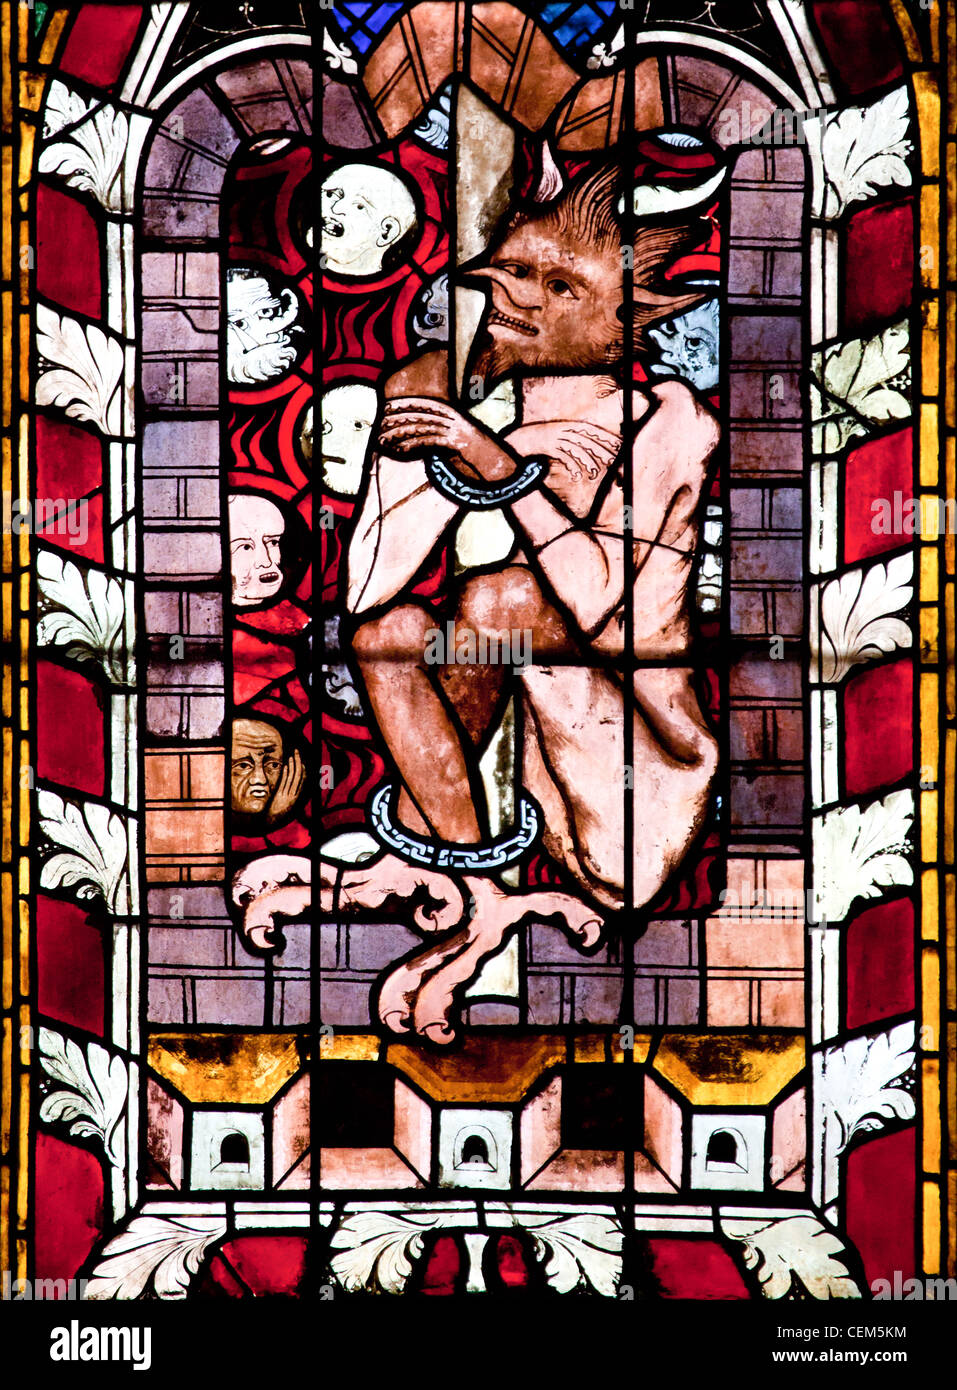 France, Alsace, Strasbourg, Strasbourg Cathedral, Stained Glass Window, Satan - Stock Image